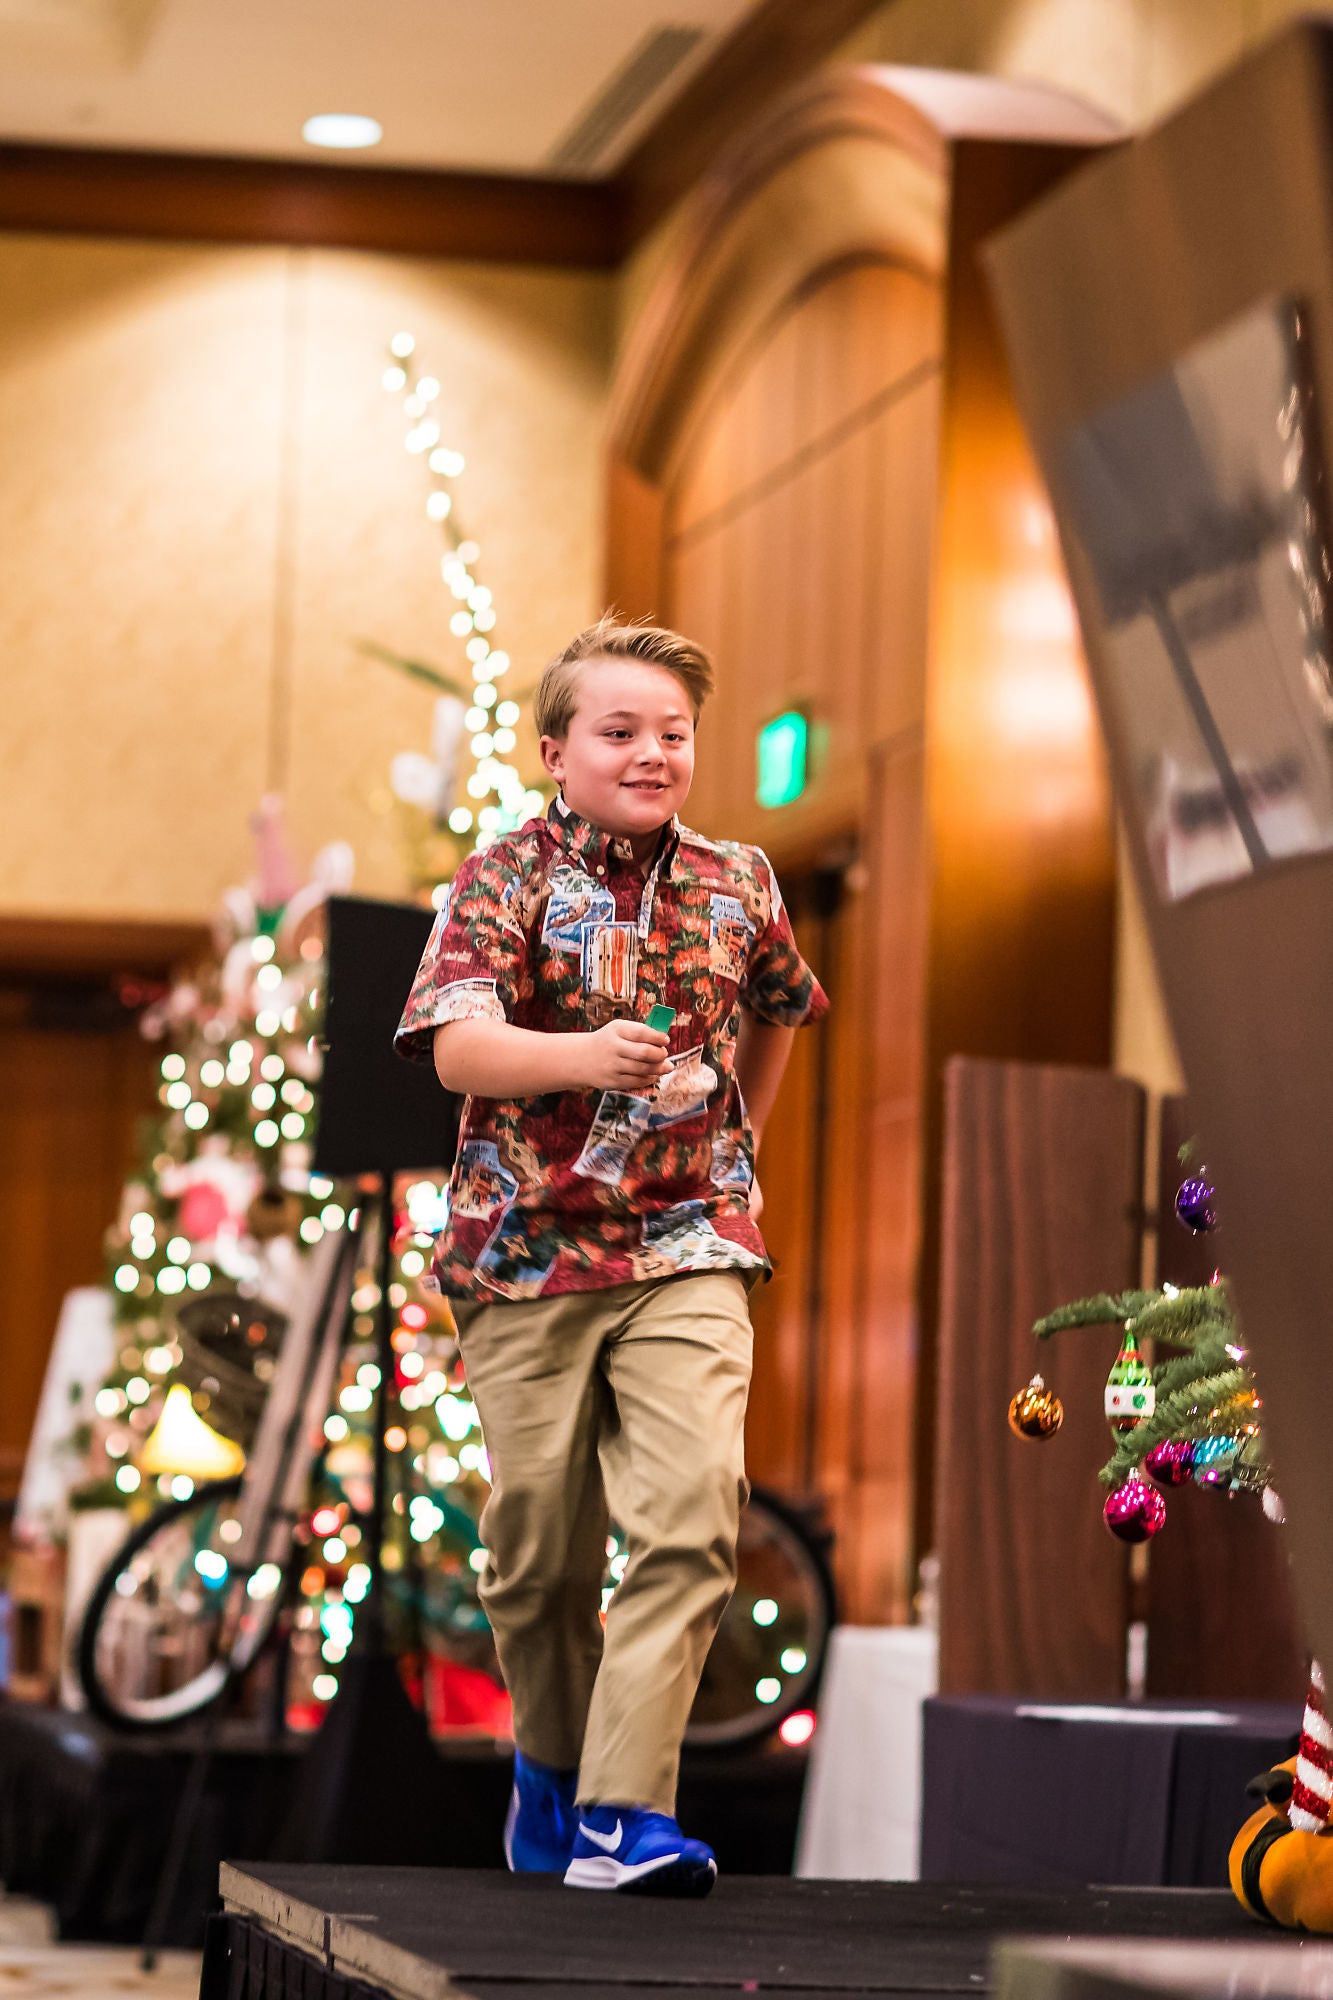 A child running on stage with Christmas decorations in the background